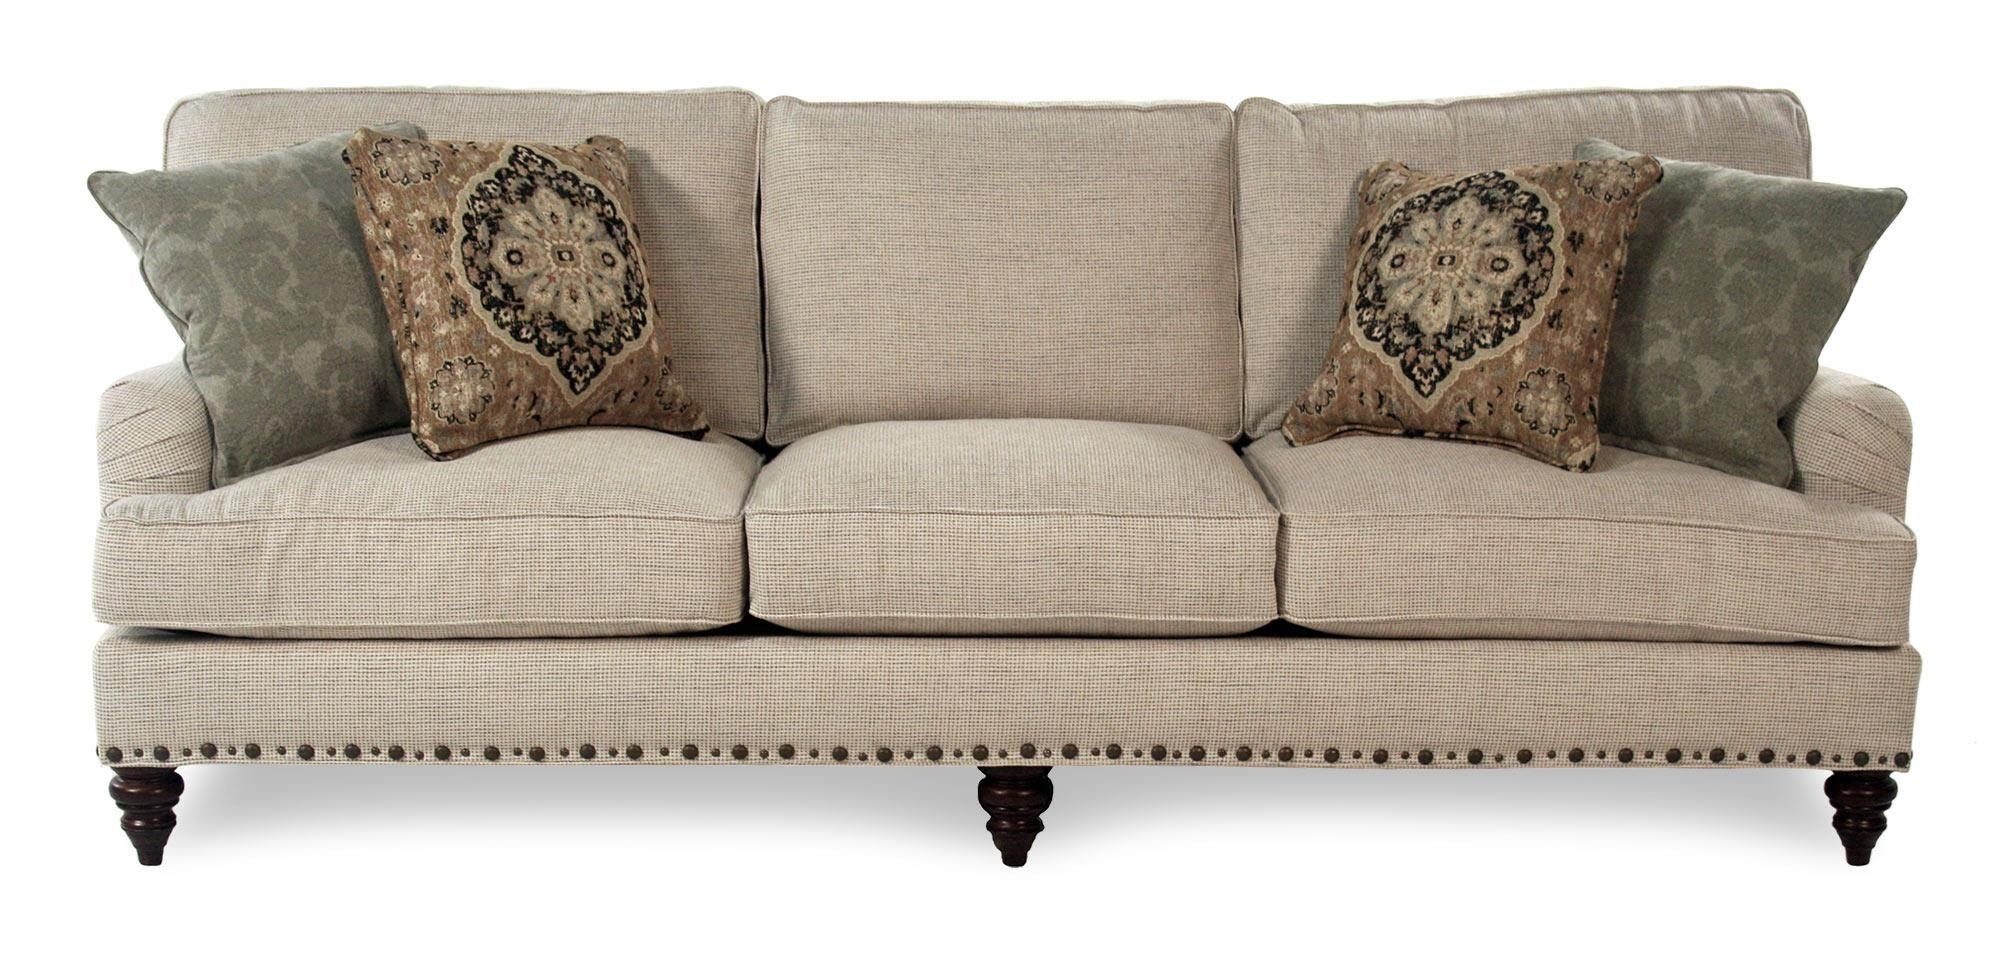 Furniture: Pick Your Lovely Broyhill Couch Design For Your Living Throughout Broyhill Sofas (Image 17 of 20)